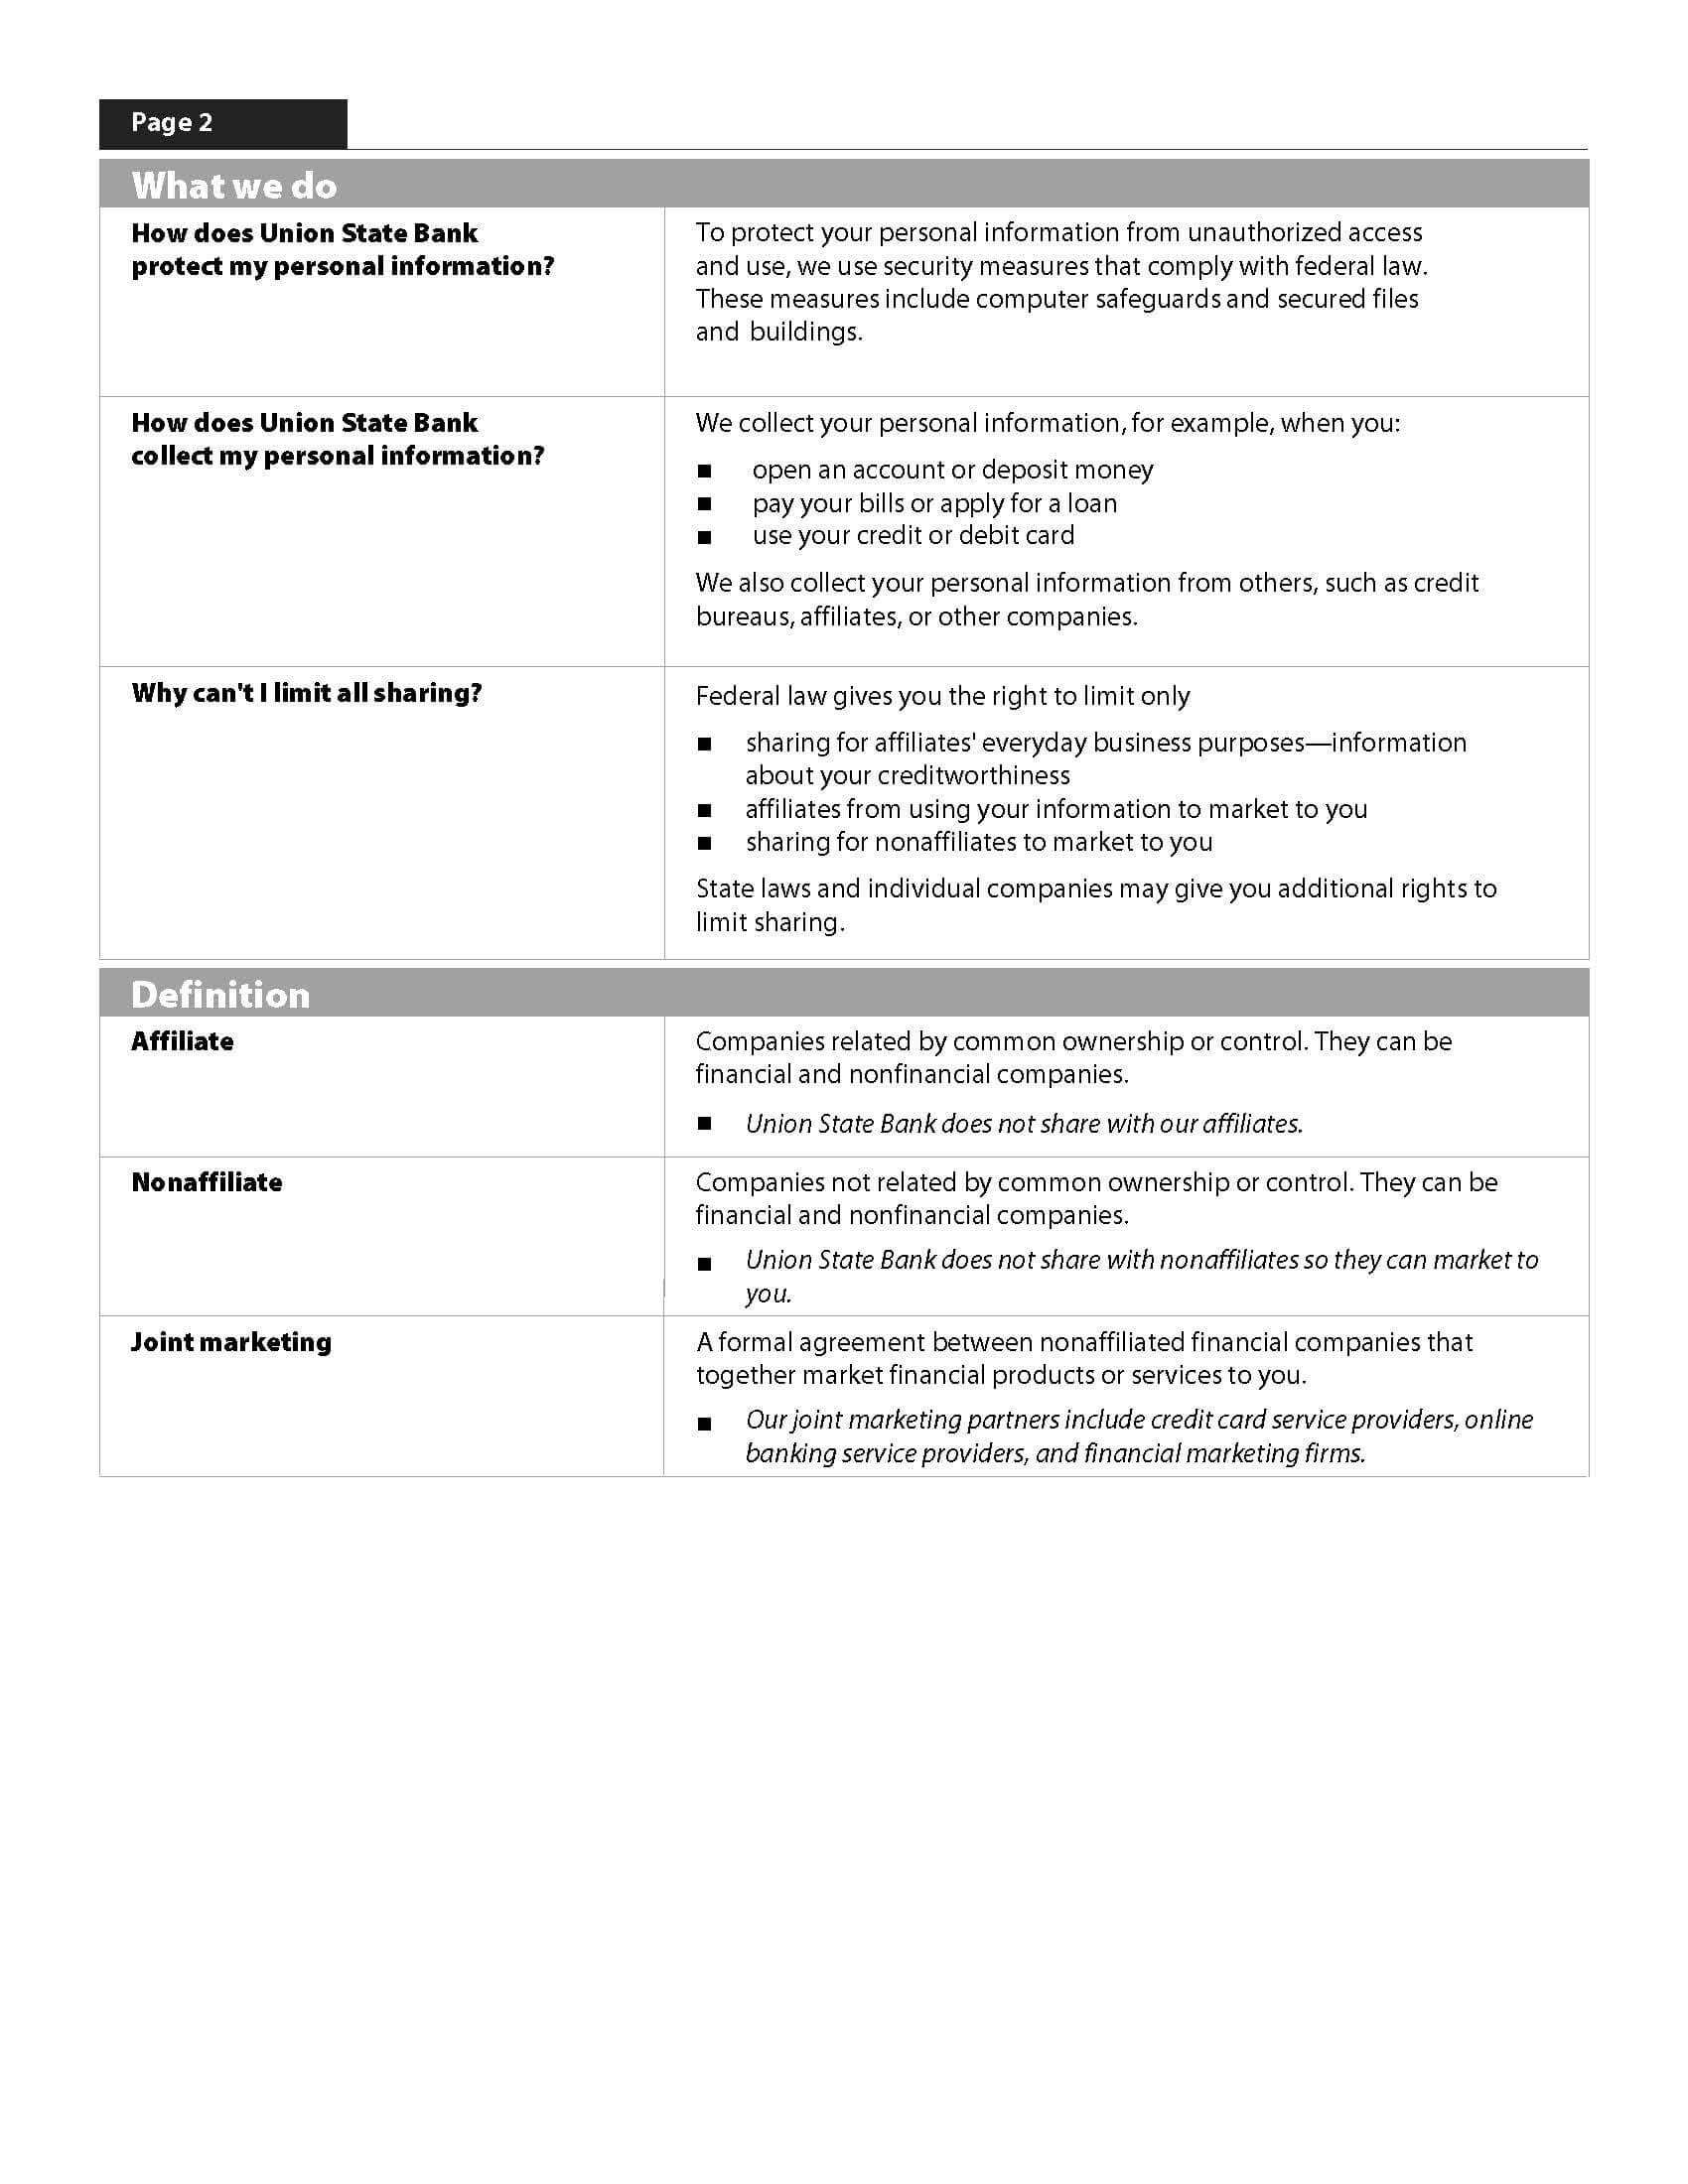 Credit Card Security Policy Template - Laste.foreversammi for Company Credit Card Policy Template